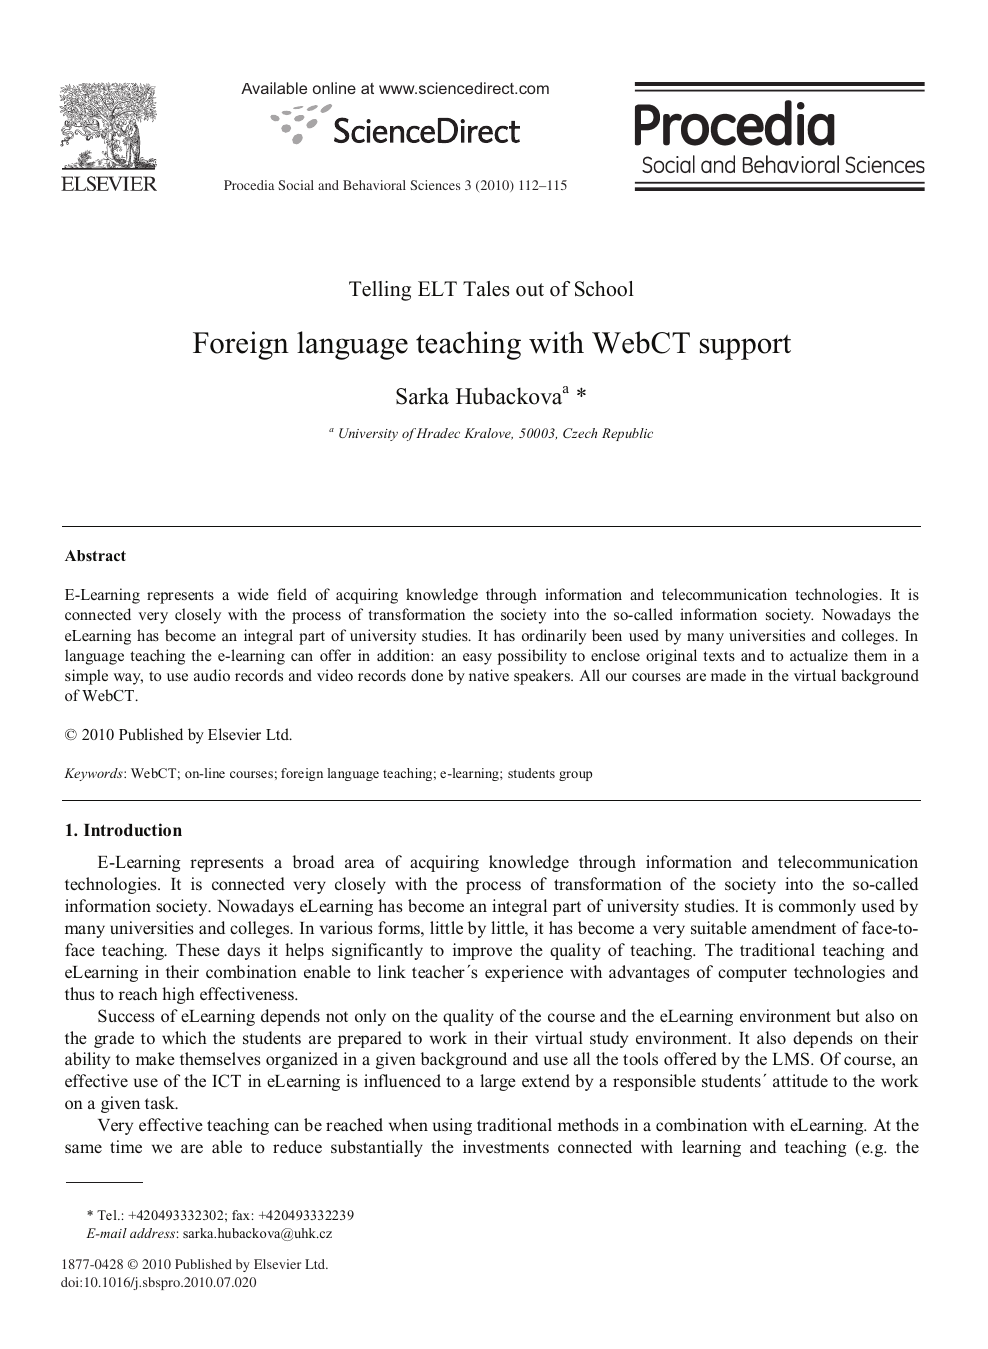 Language Supports Academic And Social >> Foreign Language Teaching With Webct Support Topic Of Research